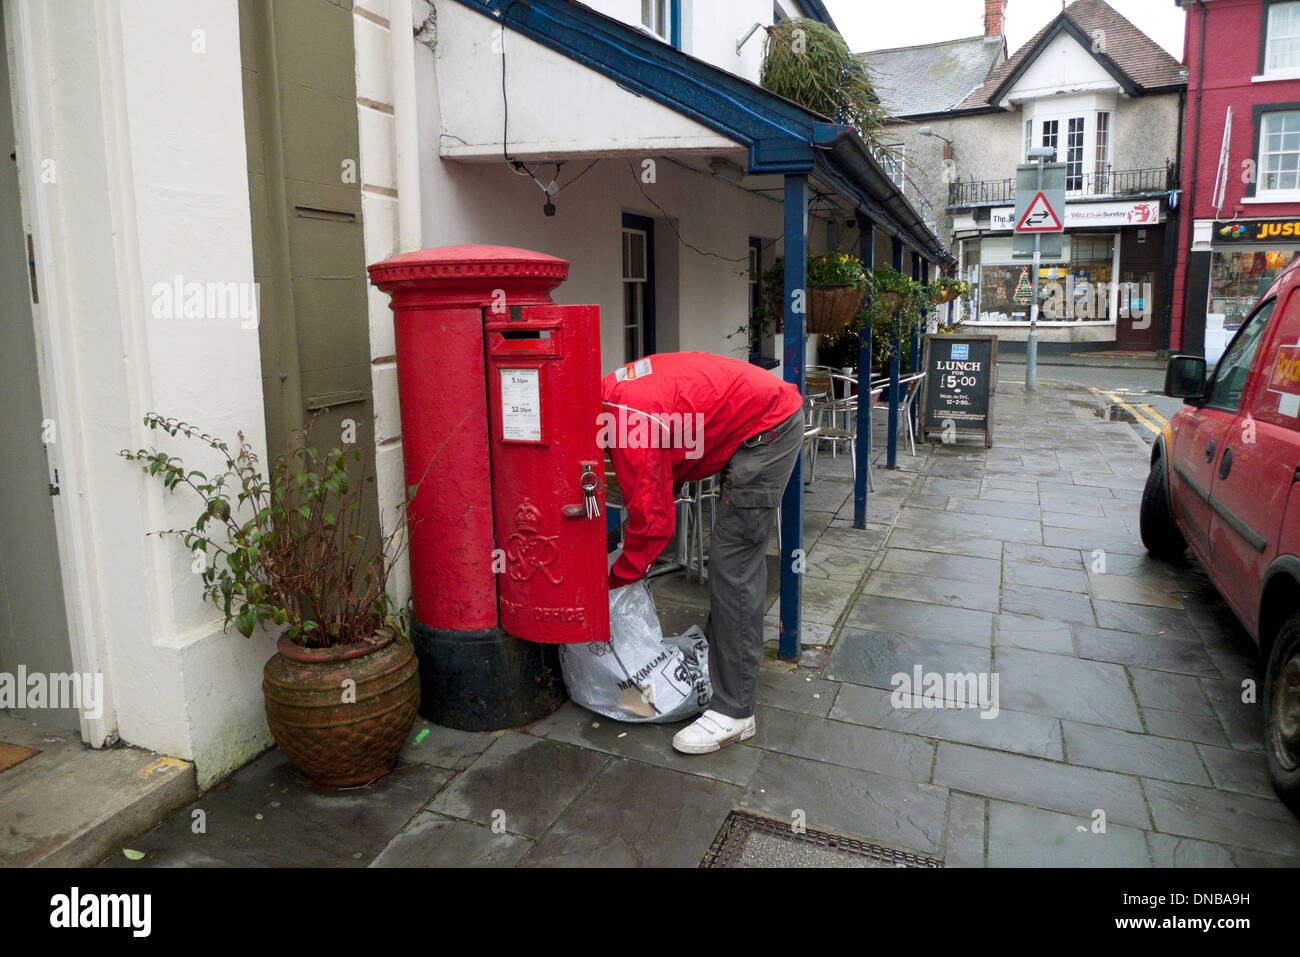 Post office worker filling his mail sack from a red pillar post box in Llandovery Carmarthenshire Wales UK  KATHY DEWITT - Stock Image